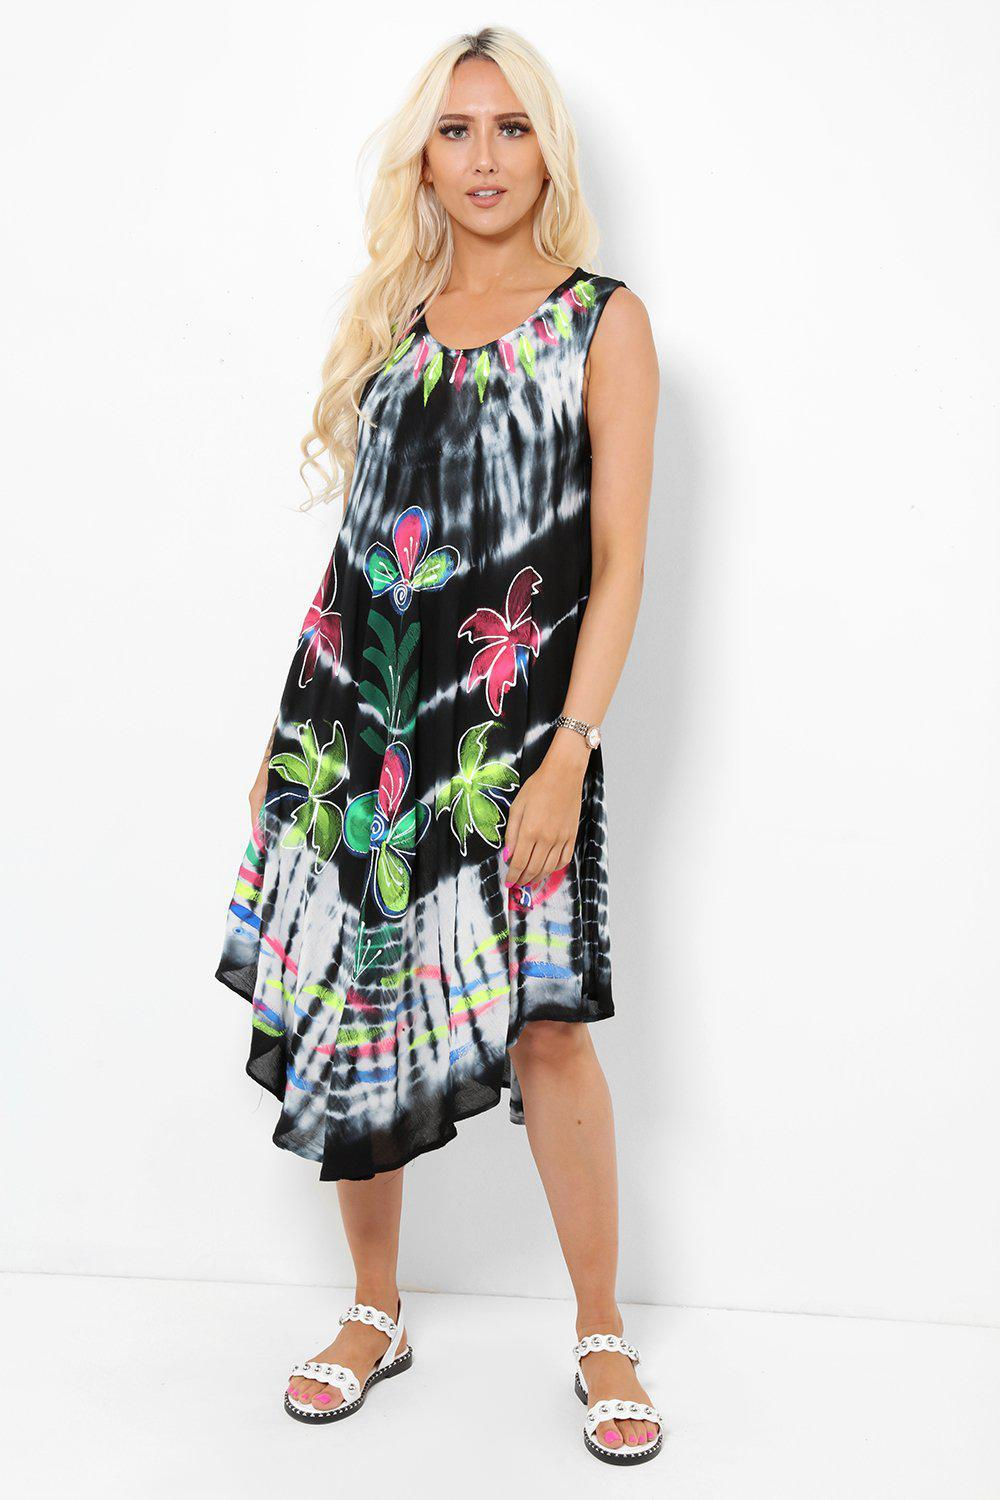 Embroidered Tie Dye Black Summer Dress